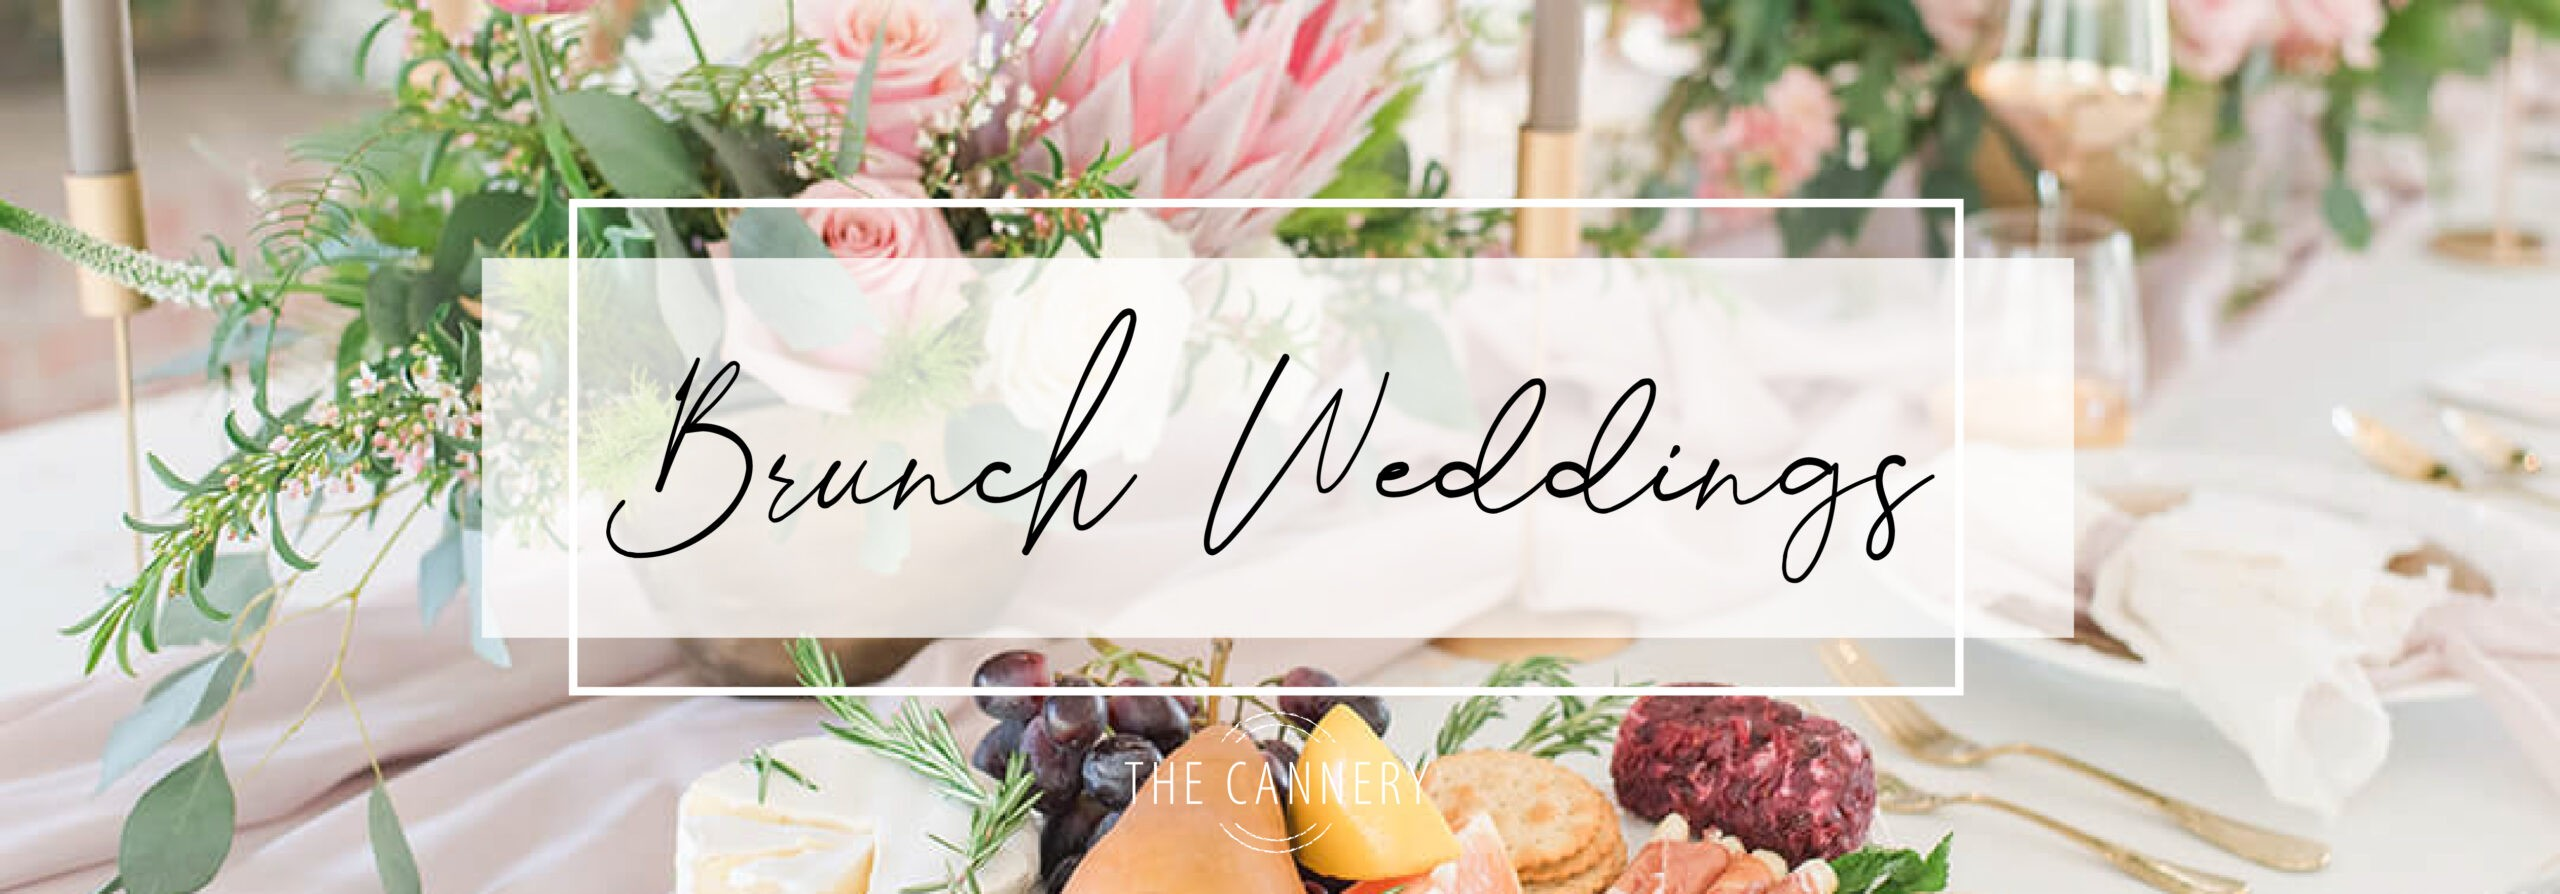 Brunch Weddings!